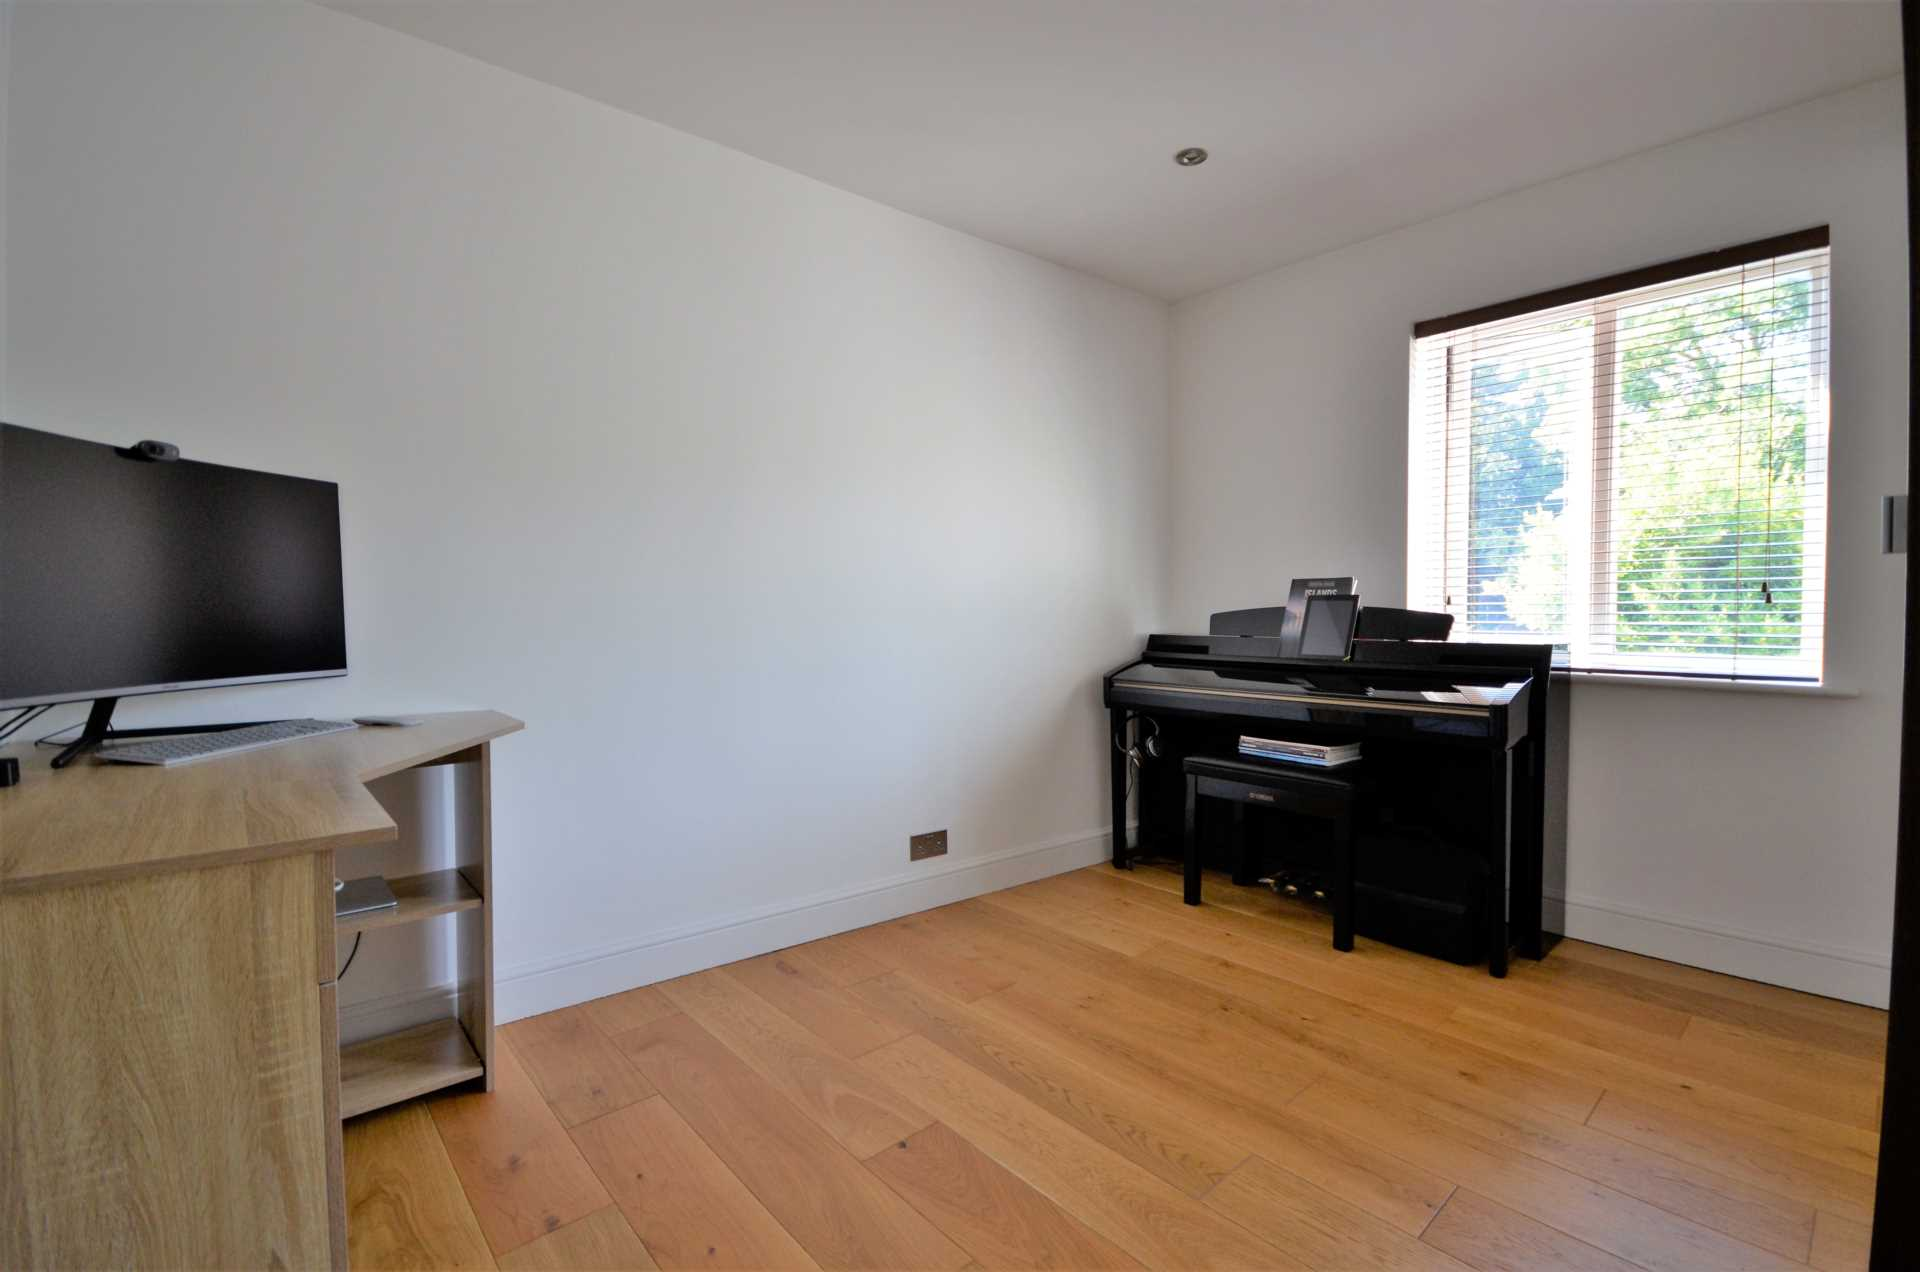 Kings Chase, Brentwood, Image 13